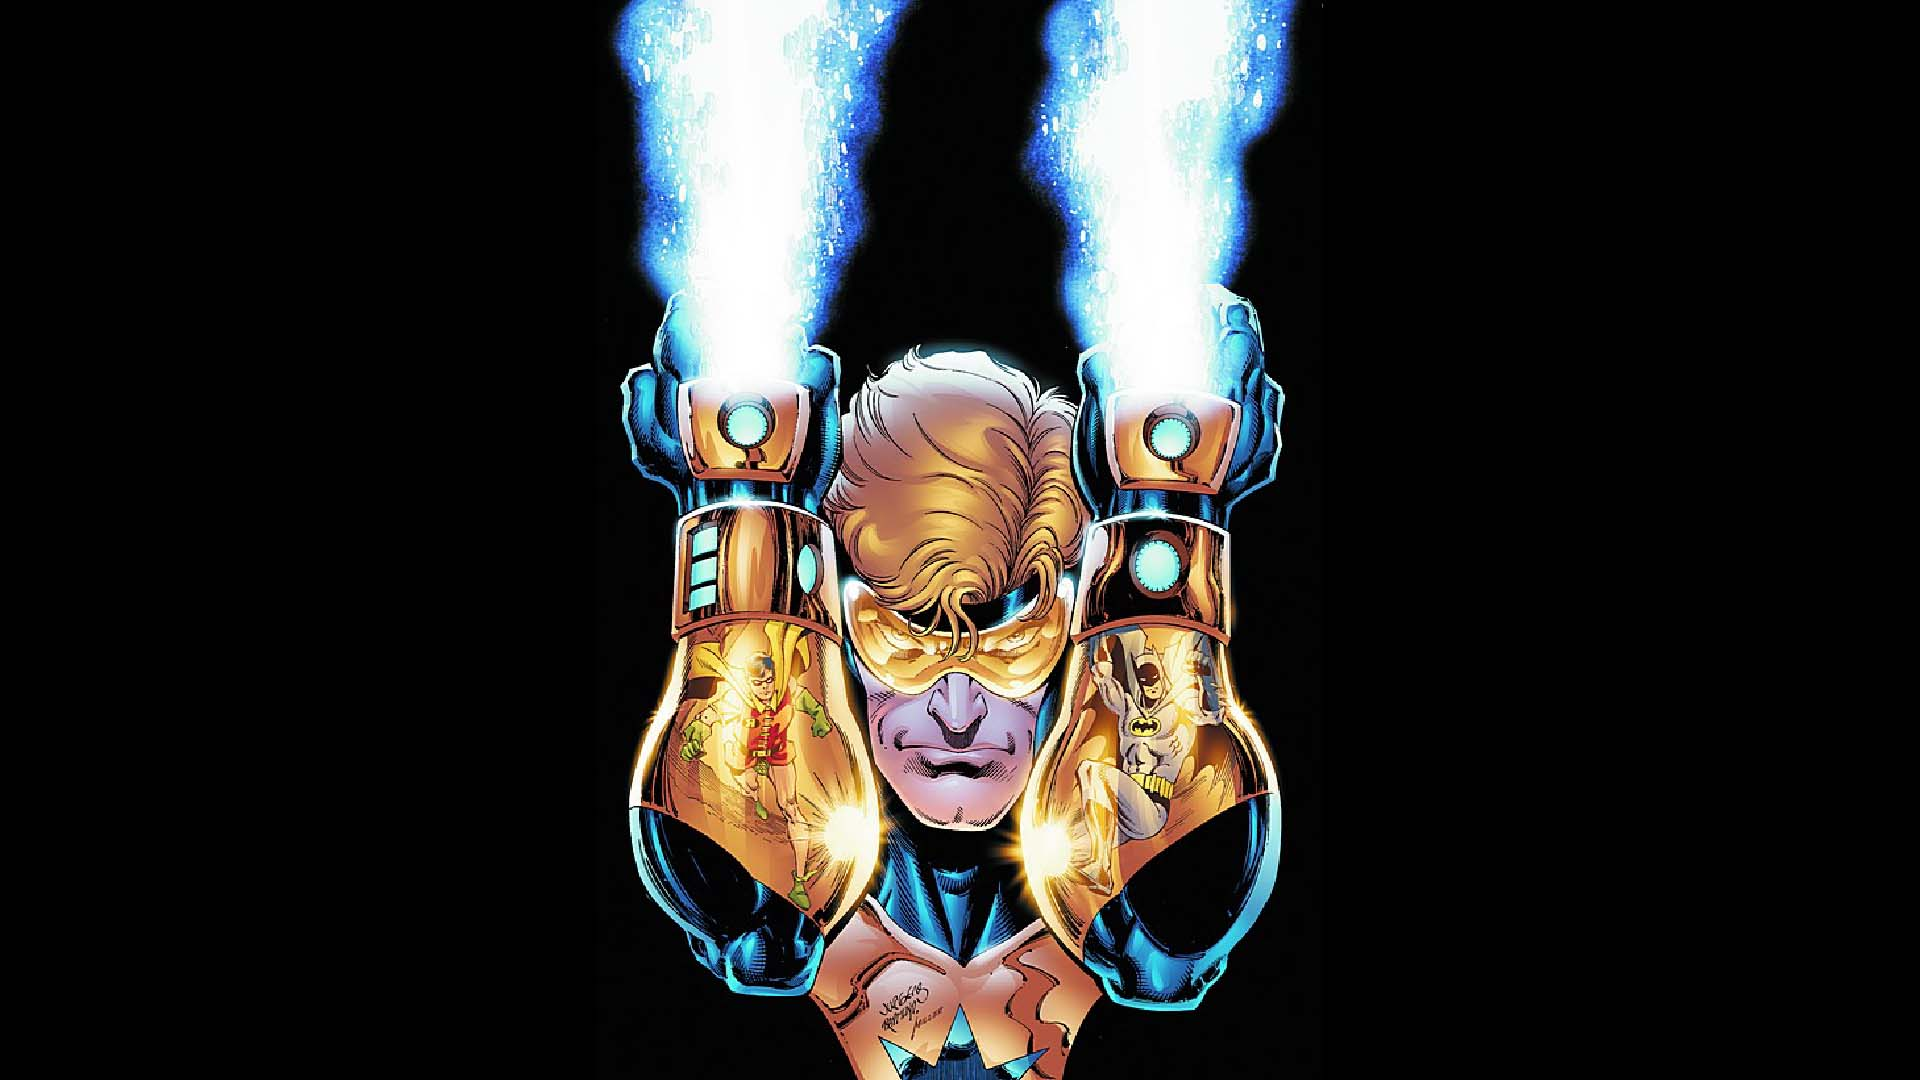 Booster Gold Wallpaper 2   1920 X 1080 stmednet 1920x1080